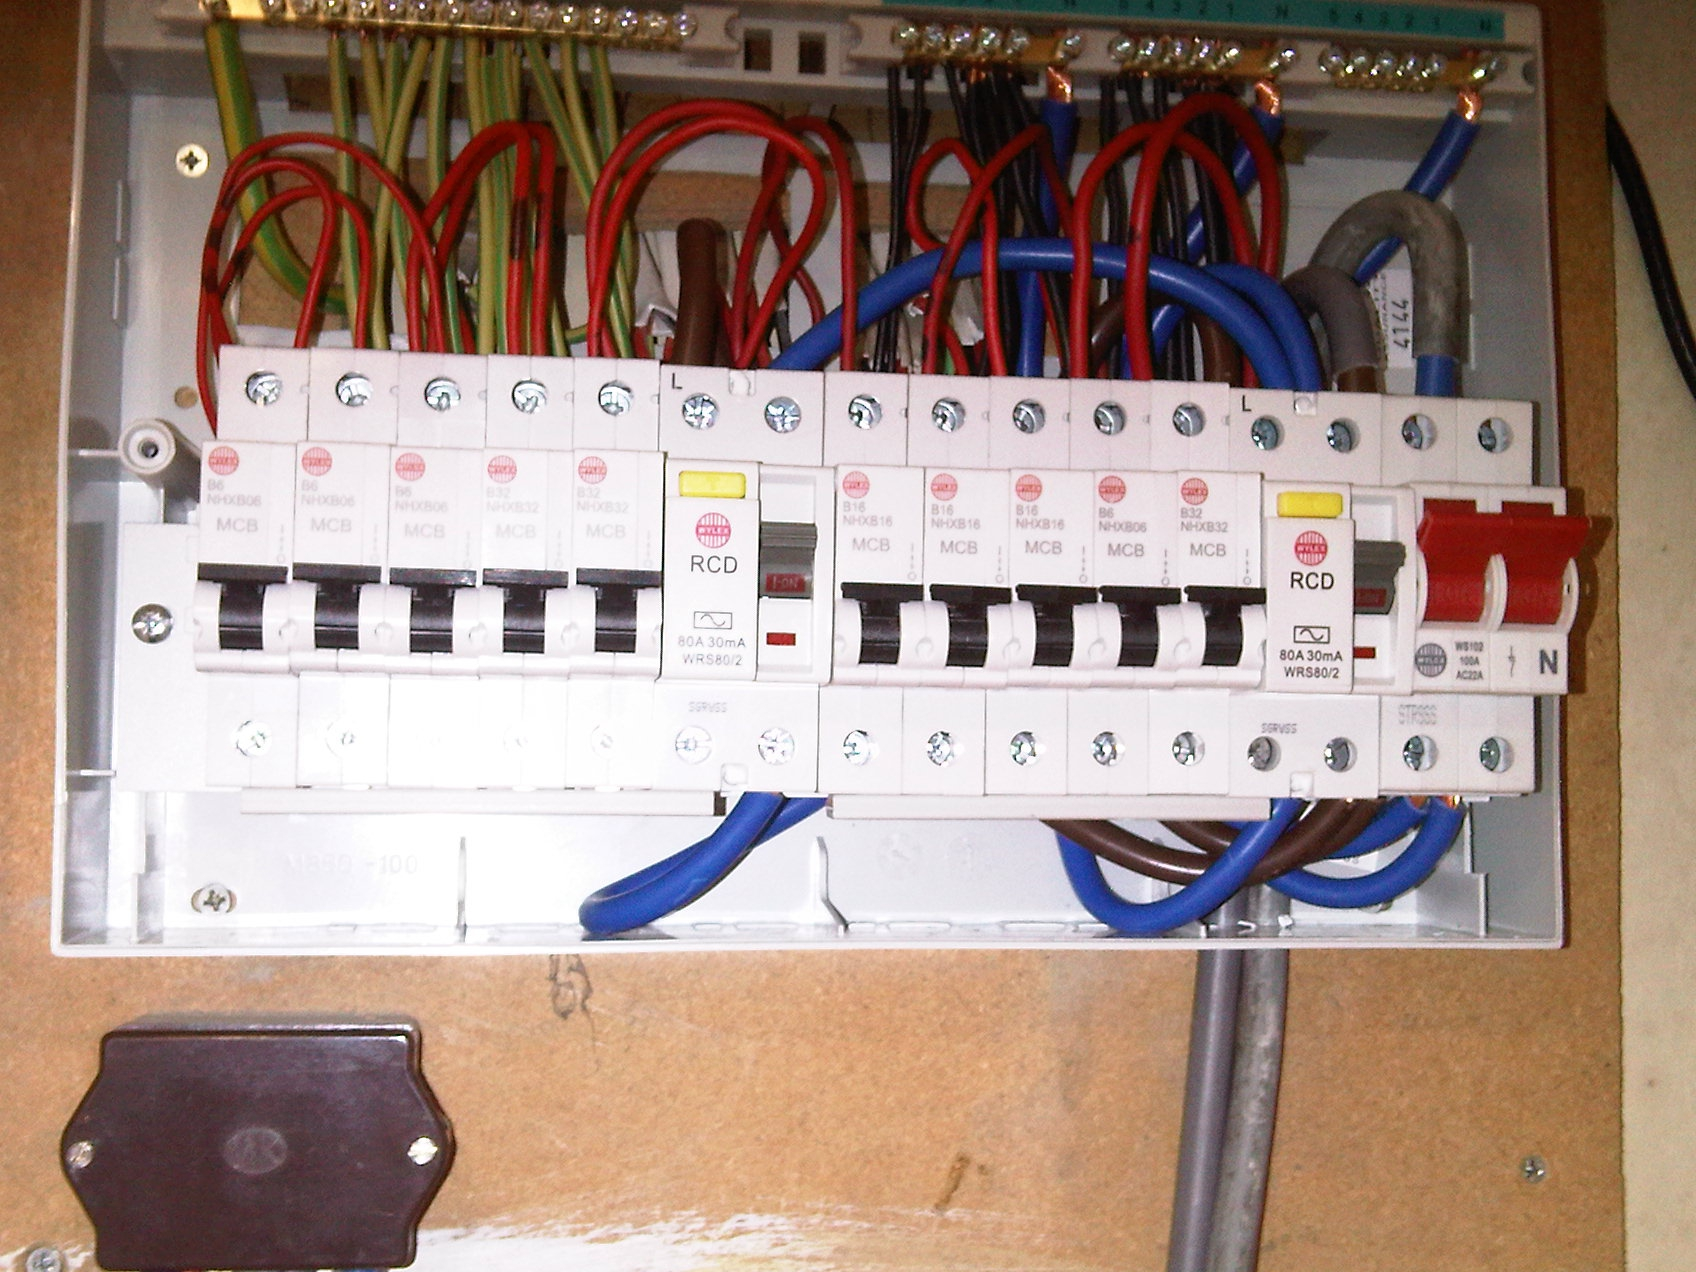 Fusebox 4 household fuse box residential fuse boxes \u2022 wiring diagrams j how to change a fuse in a modern fuse box at alyssarenee.co